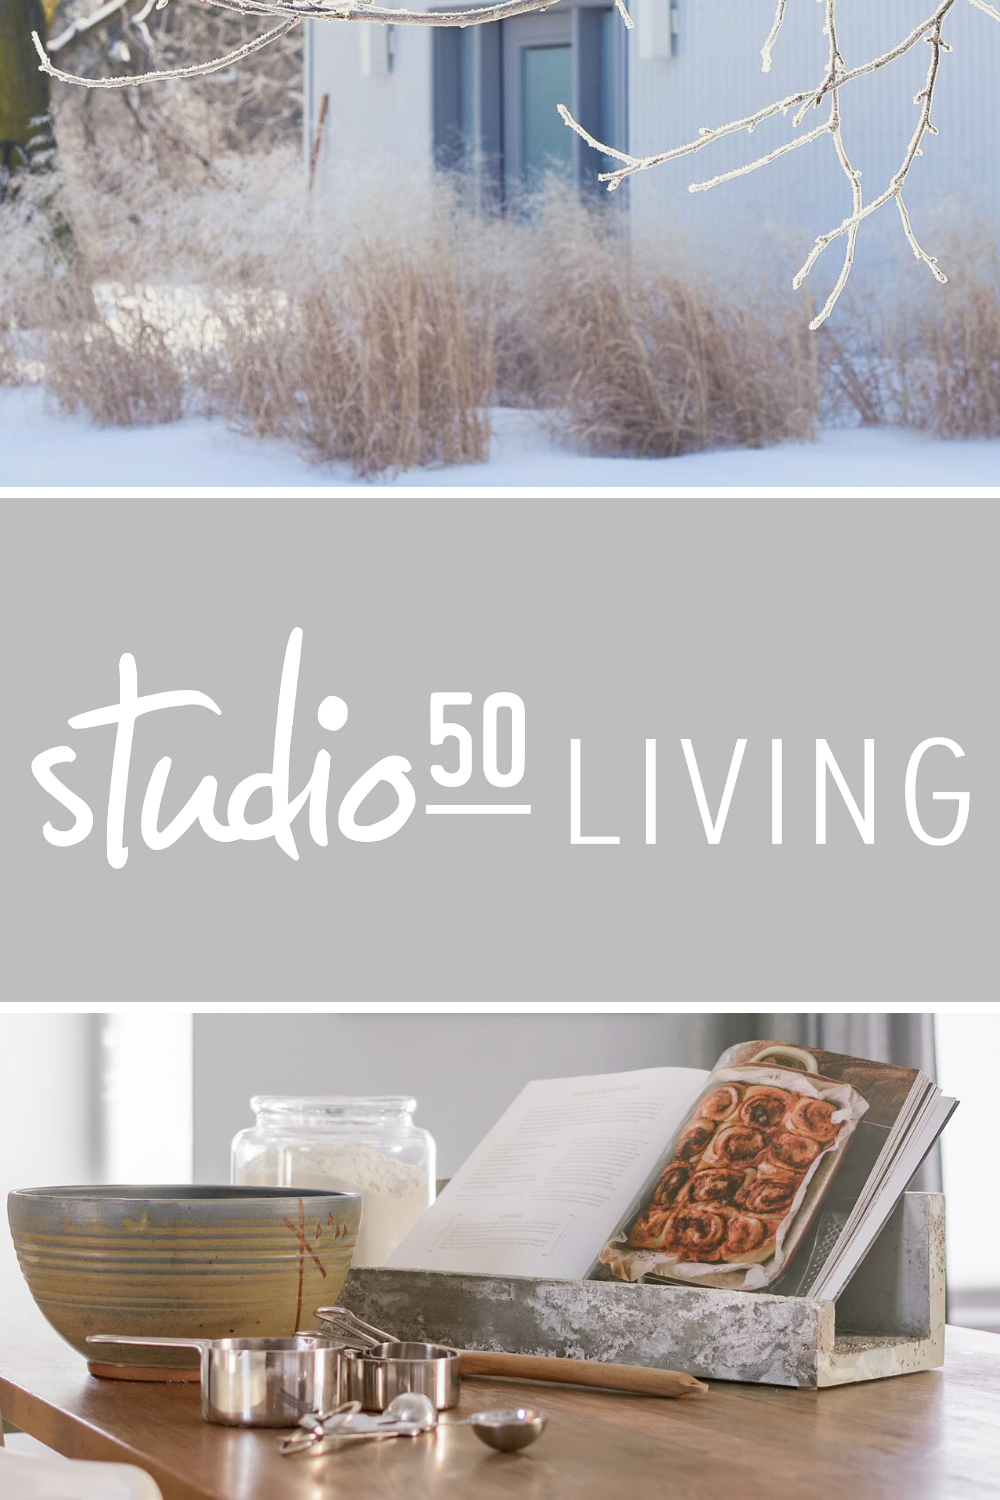 Studio50 Living in February 2021